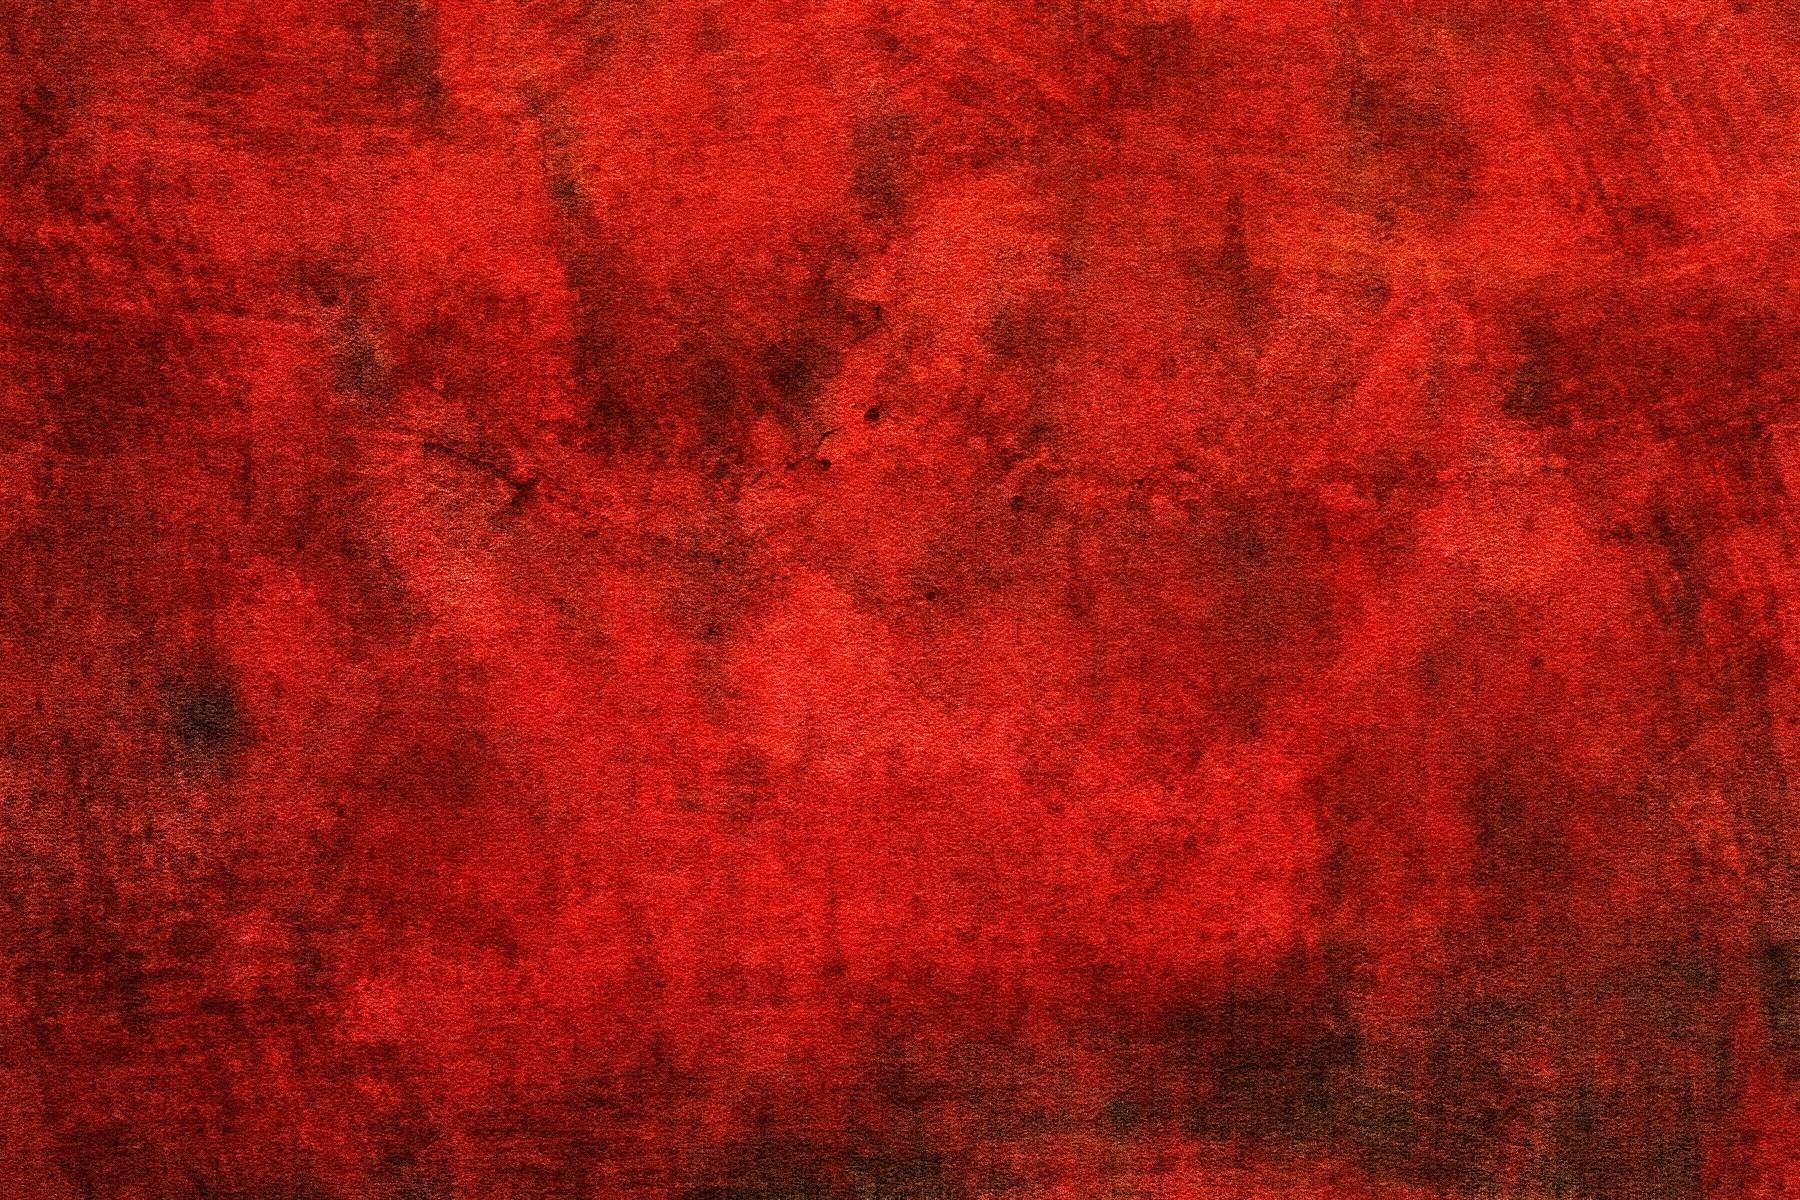 Red Texture Wallpapers Hd